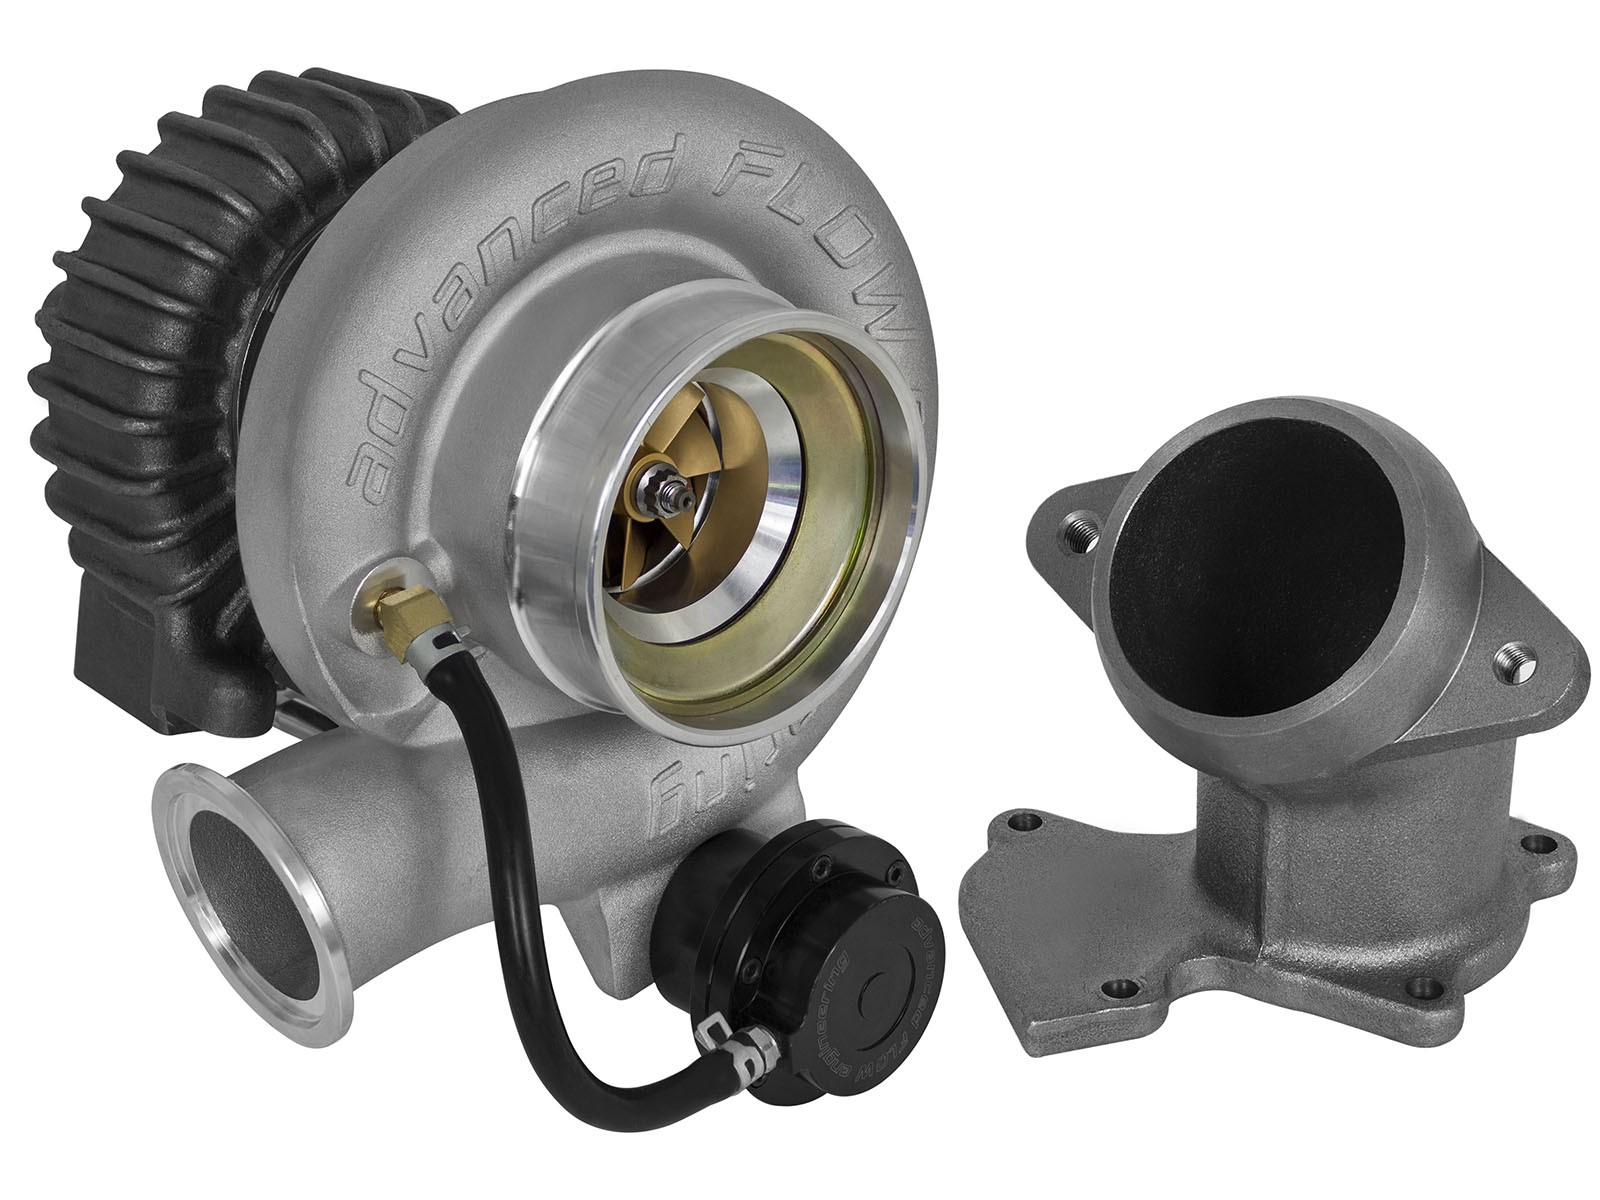 aFe POWER 46-60062-1 BladeRunner GT Series Turbocharger